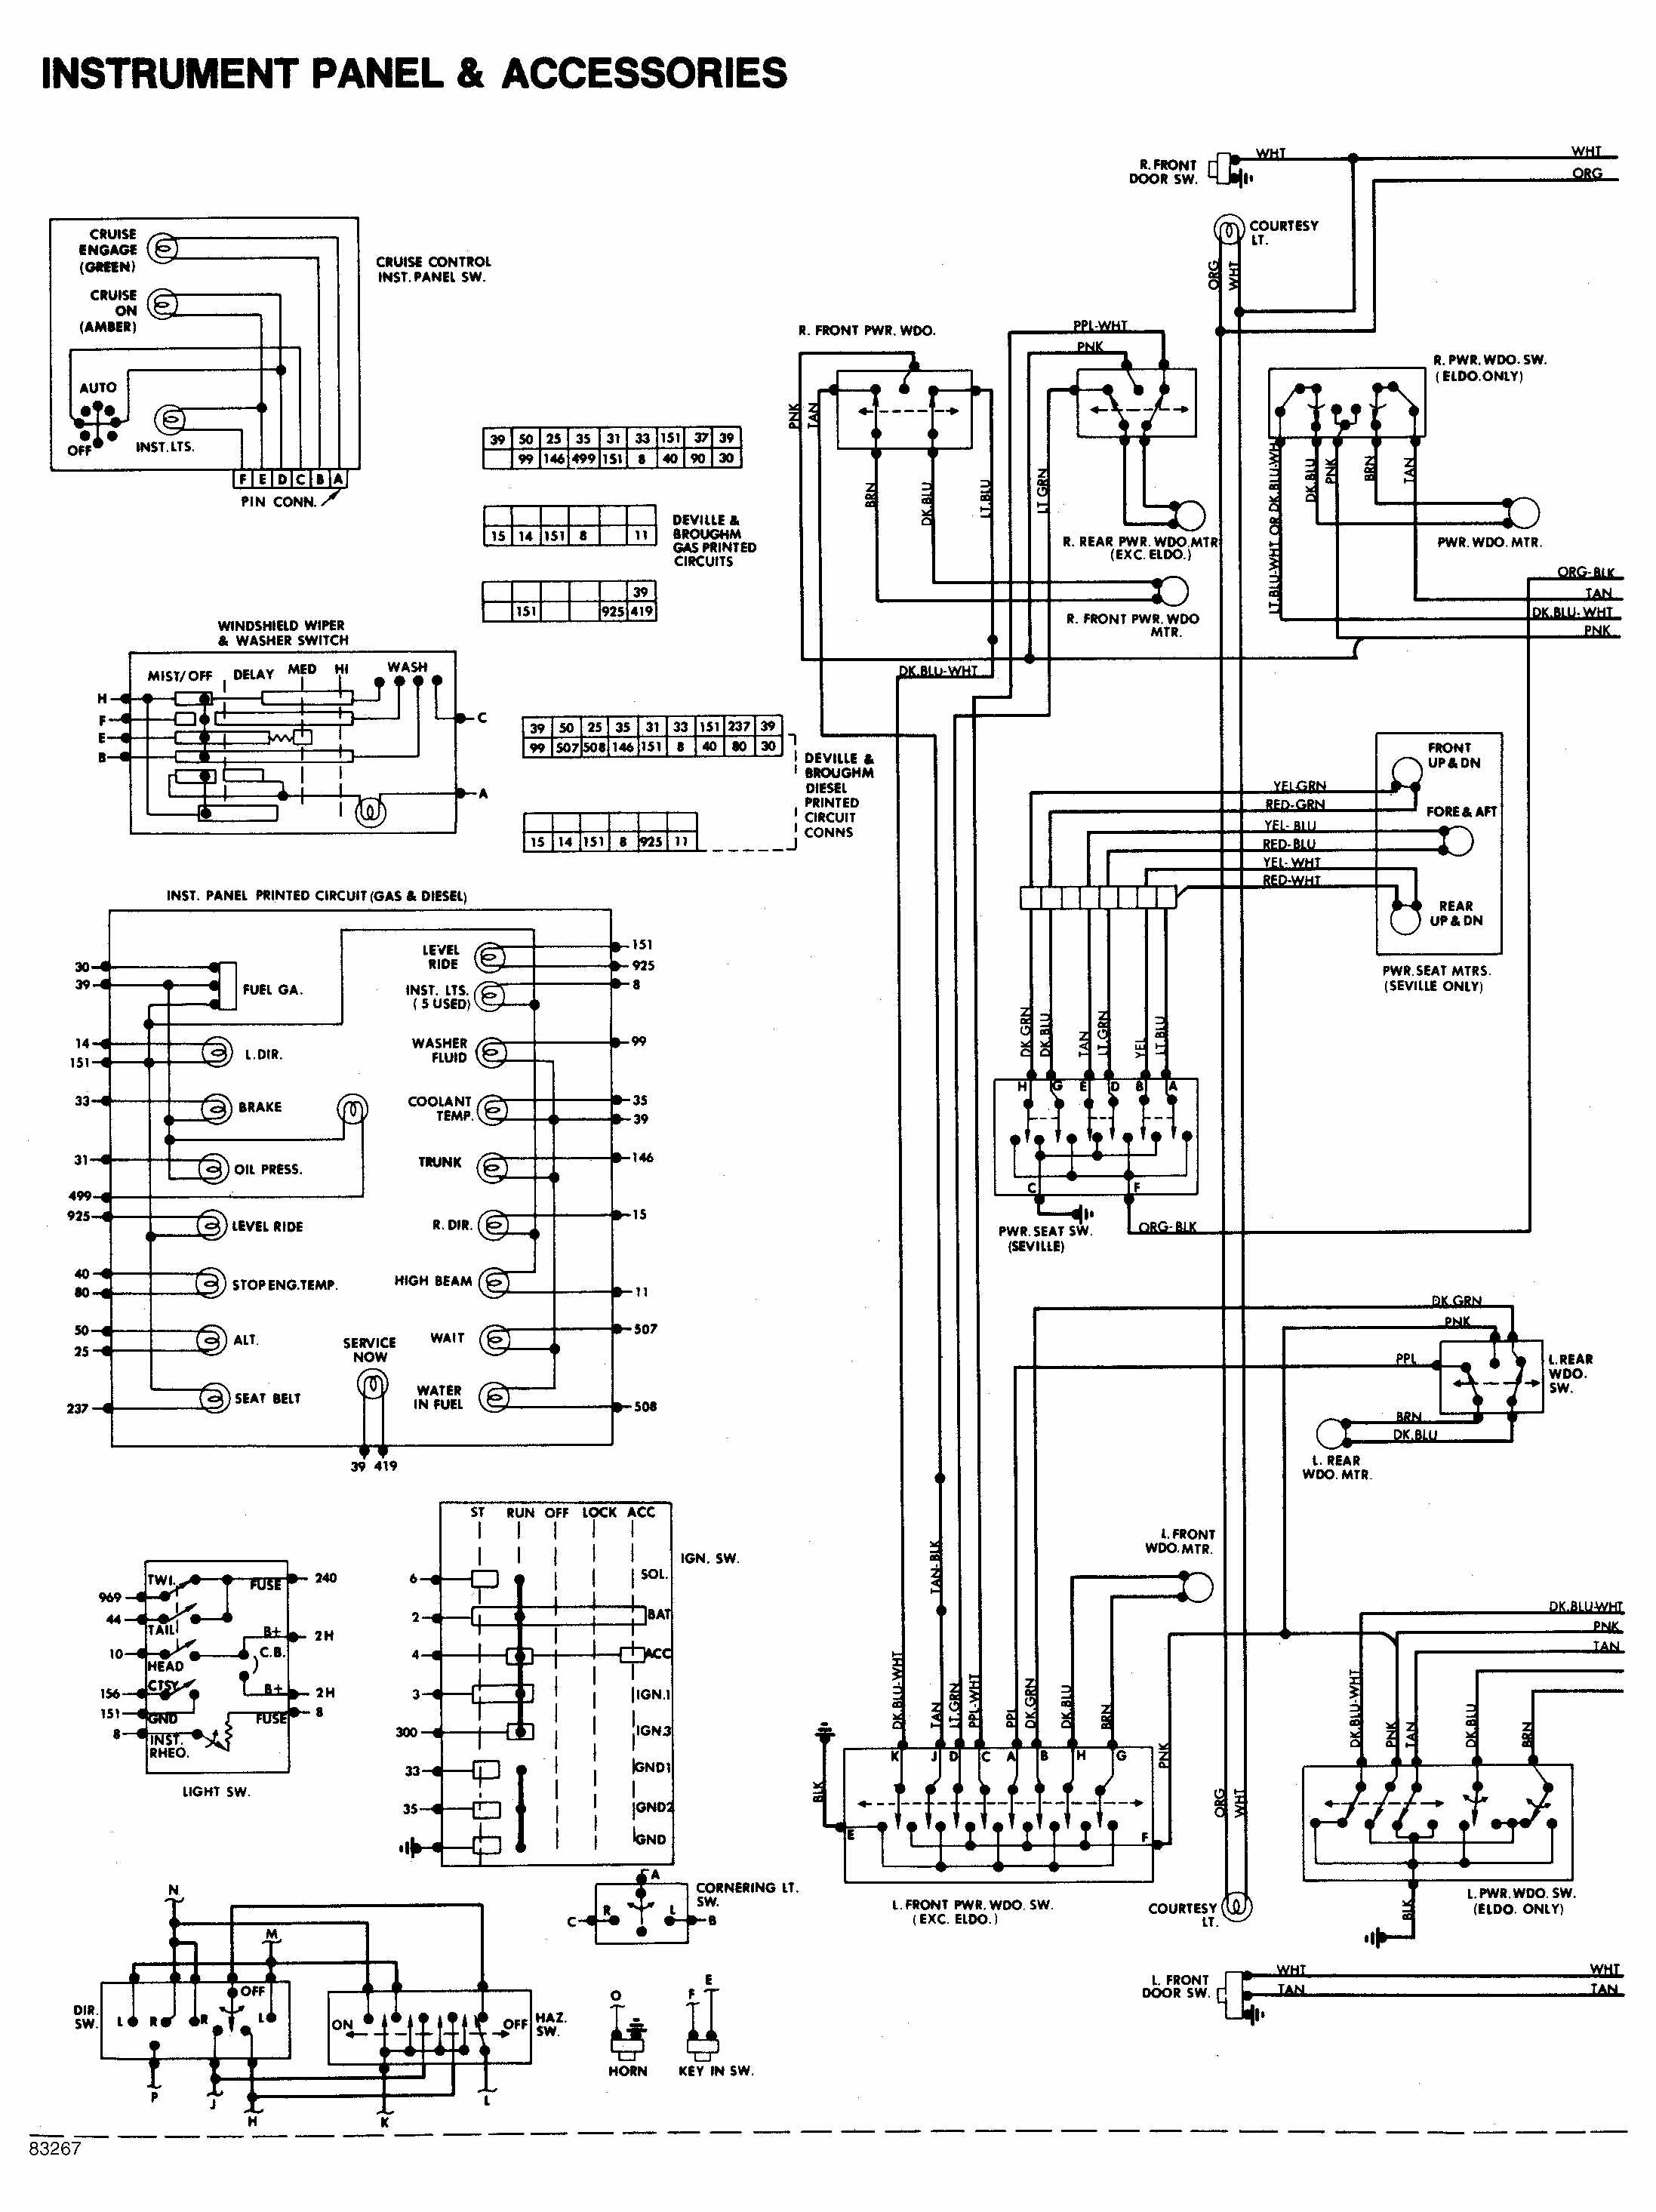 instrument panel and accessories wiring diagram of 1984 cadillac deville gm wiring diagrams 95 98 gm truck wiring diagrams \u2022 wiring 94 Ford Mustang Coupe Fuse Box at soozxer.org